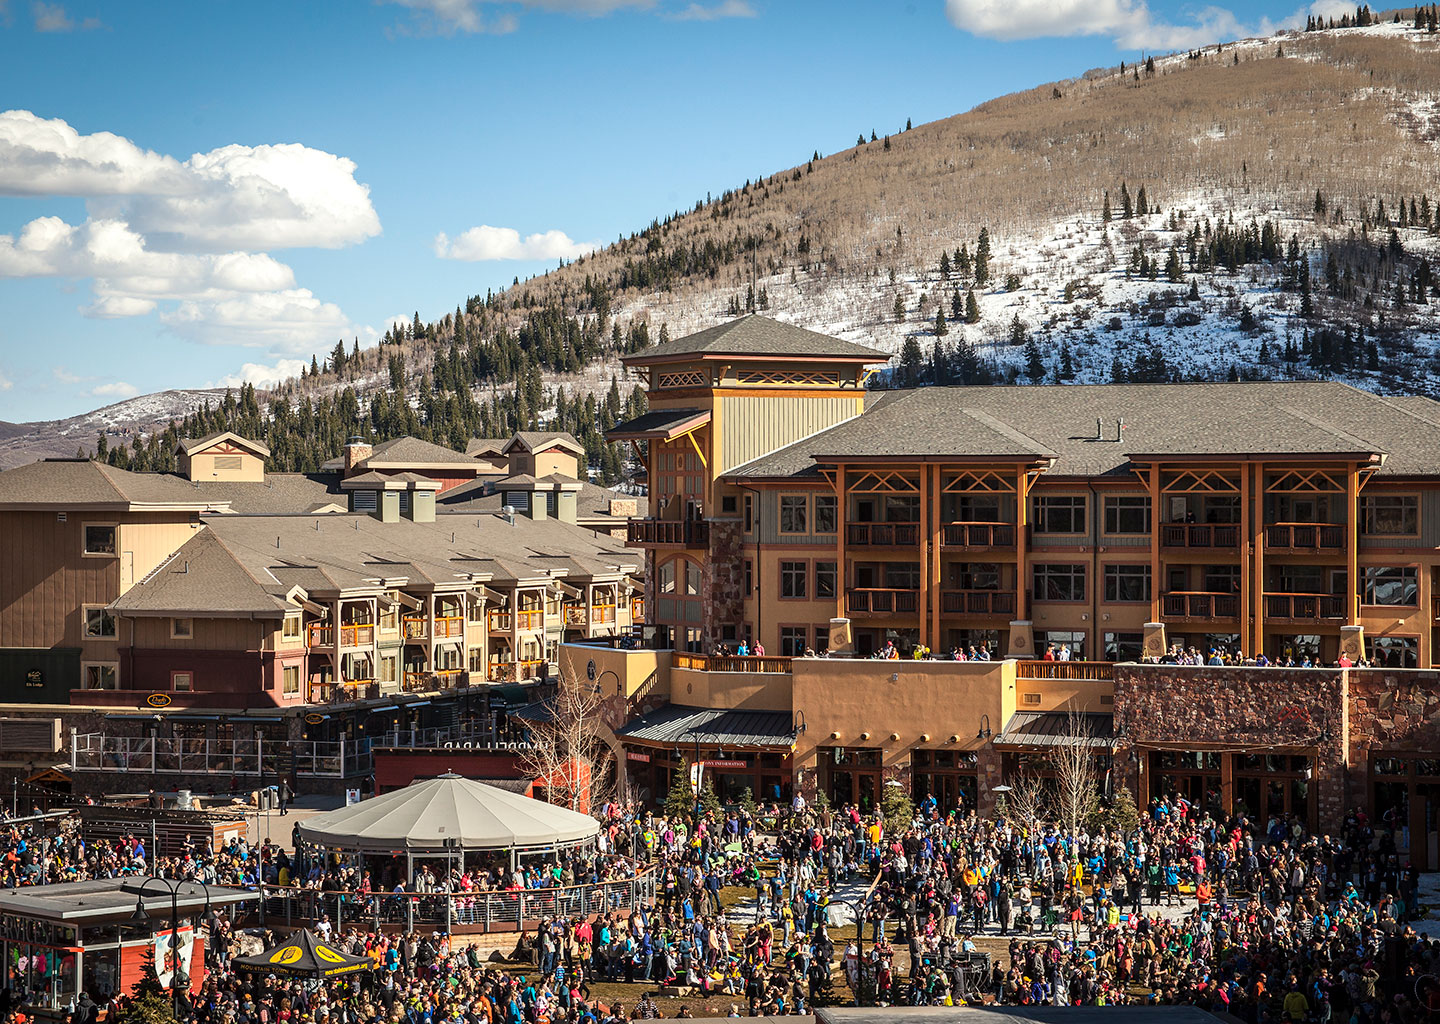 Spring Skiing Crowds at Canyons Village Ski Area in Park City Utah